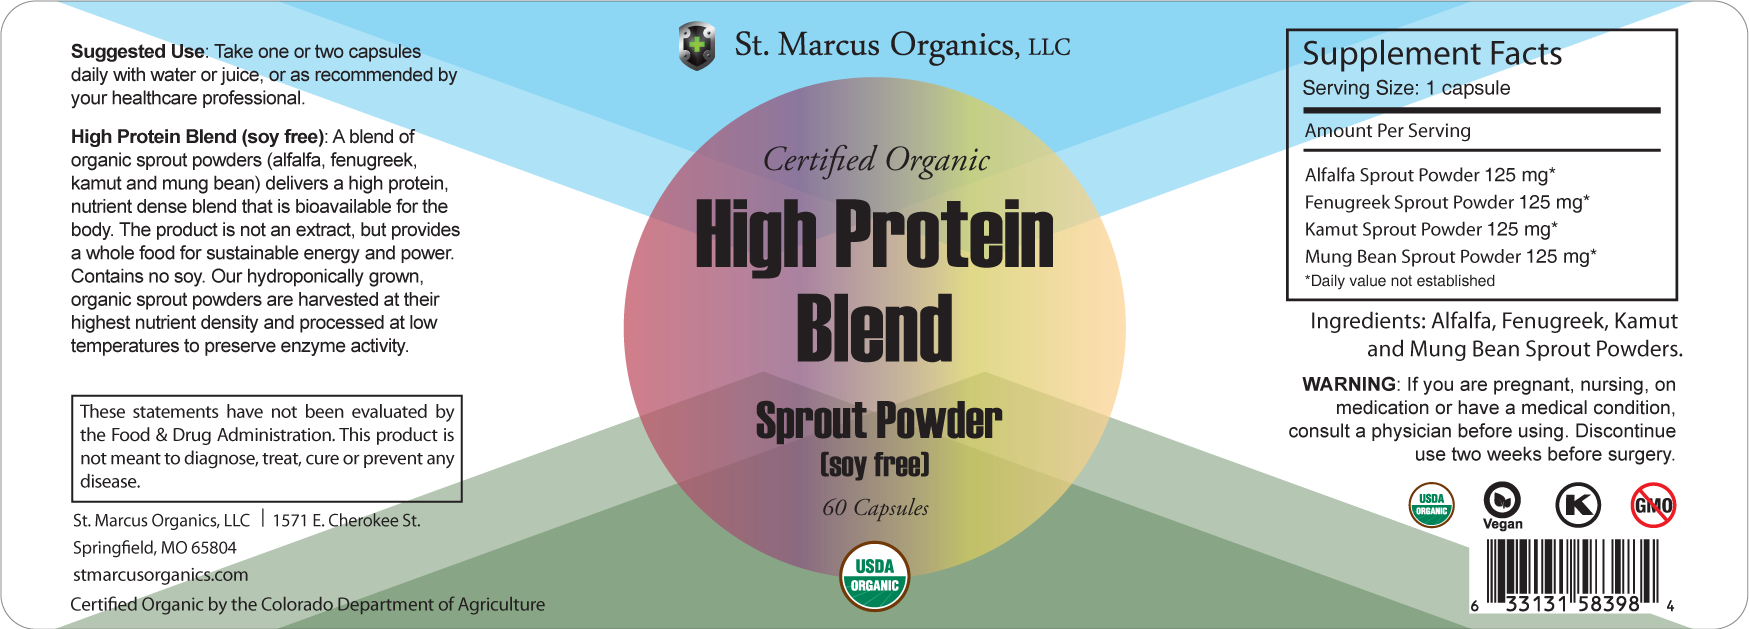 High-Protein-Soy-Free-Sprout-Powder-Capsules-St-Marcus-Organics